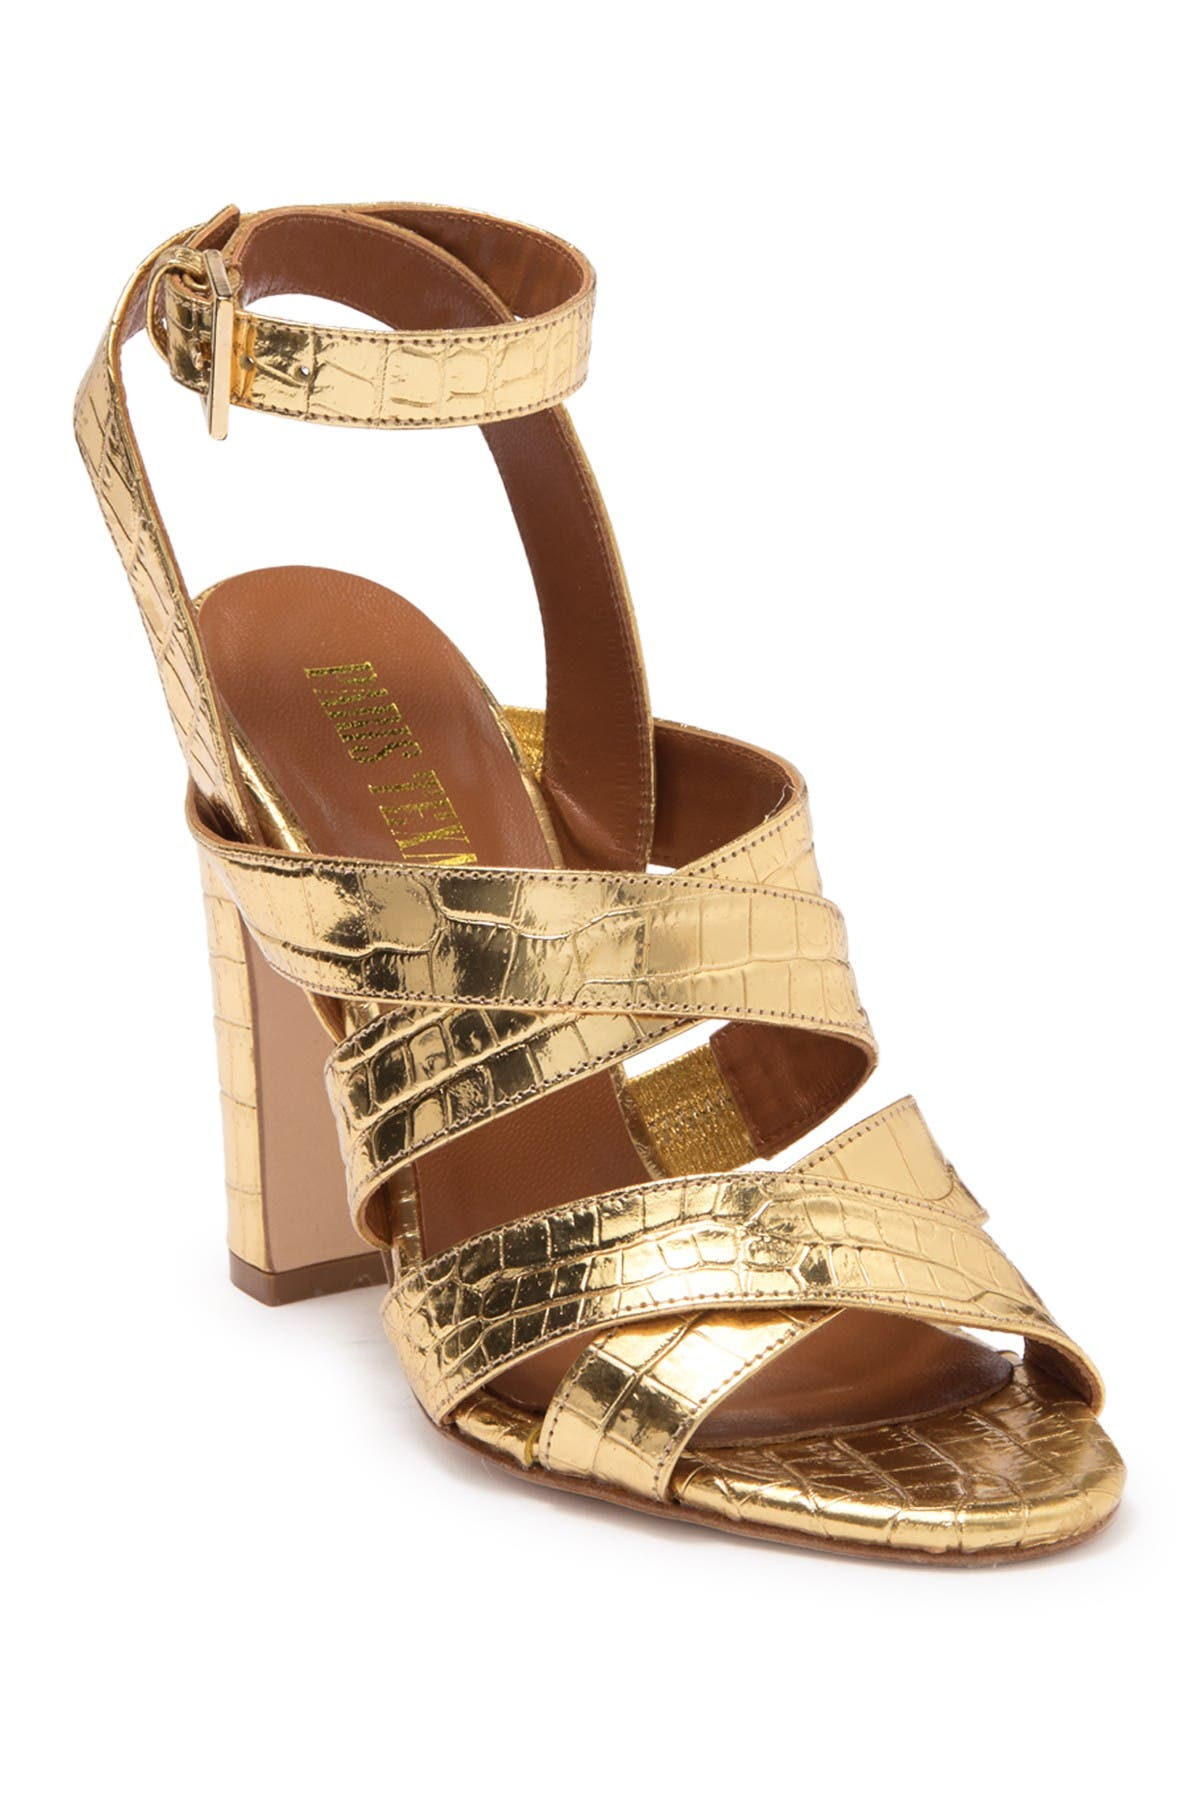 Image of PARIS TEXAS Metallic Croc Embossed Print Strappy Block Heel Sandal